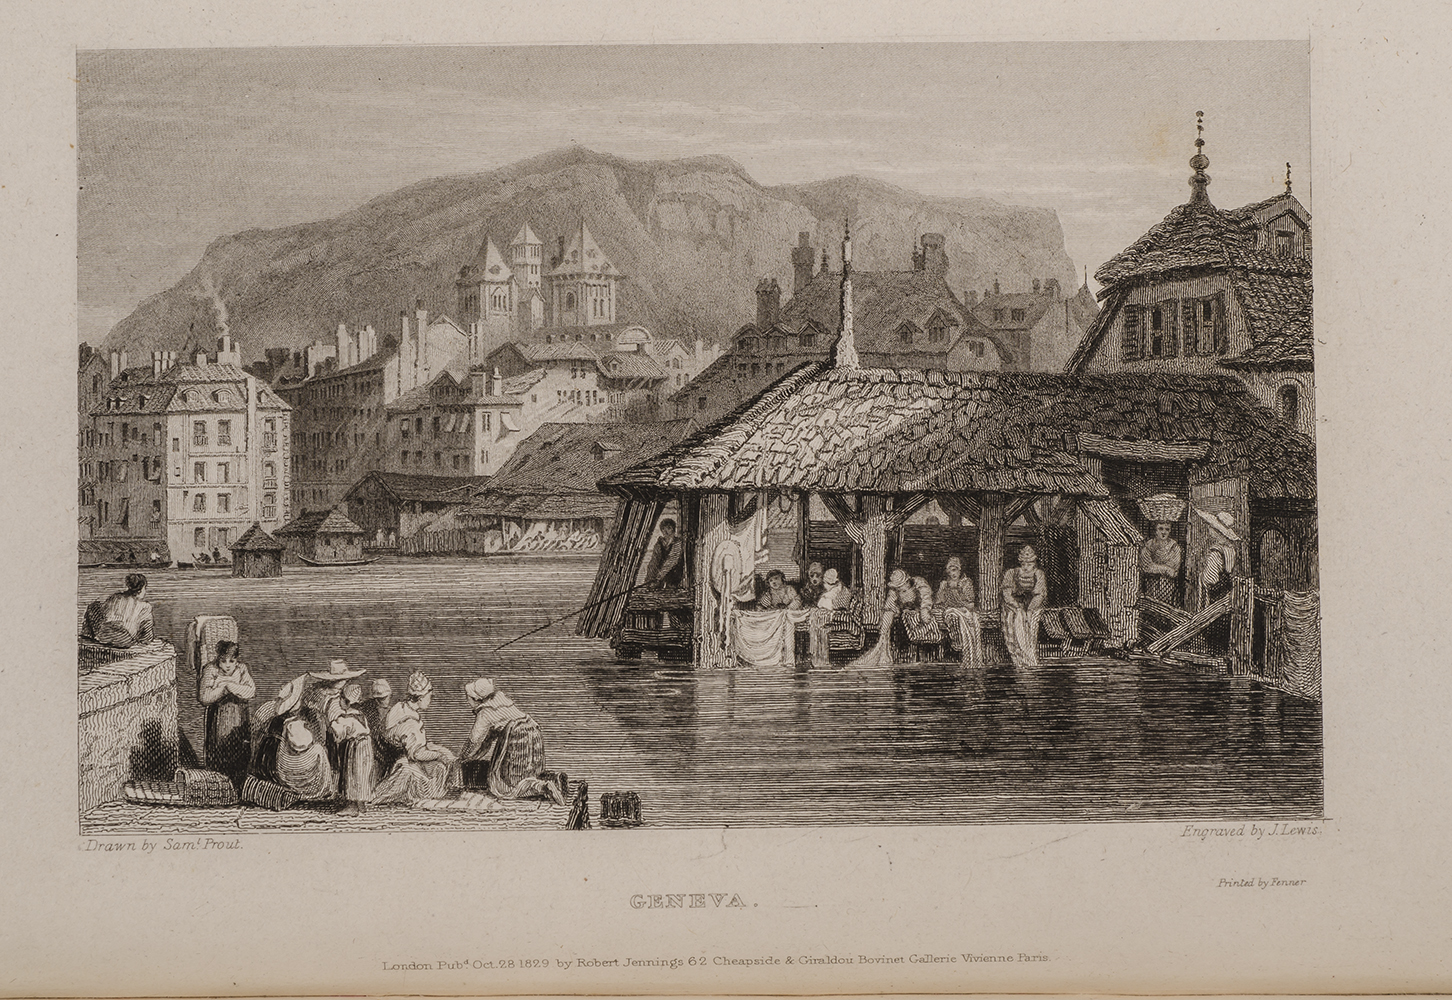 ROSCOE, THOMAS; PROUT, SAMUEL, ILLUSTRATOR; WESTLEY, F., BINDER - Tourist in Switzerland and Italy, the